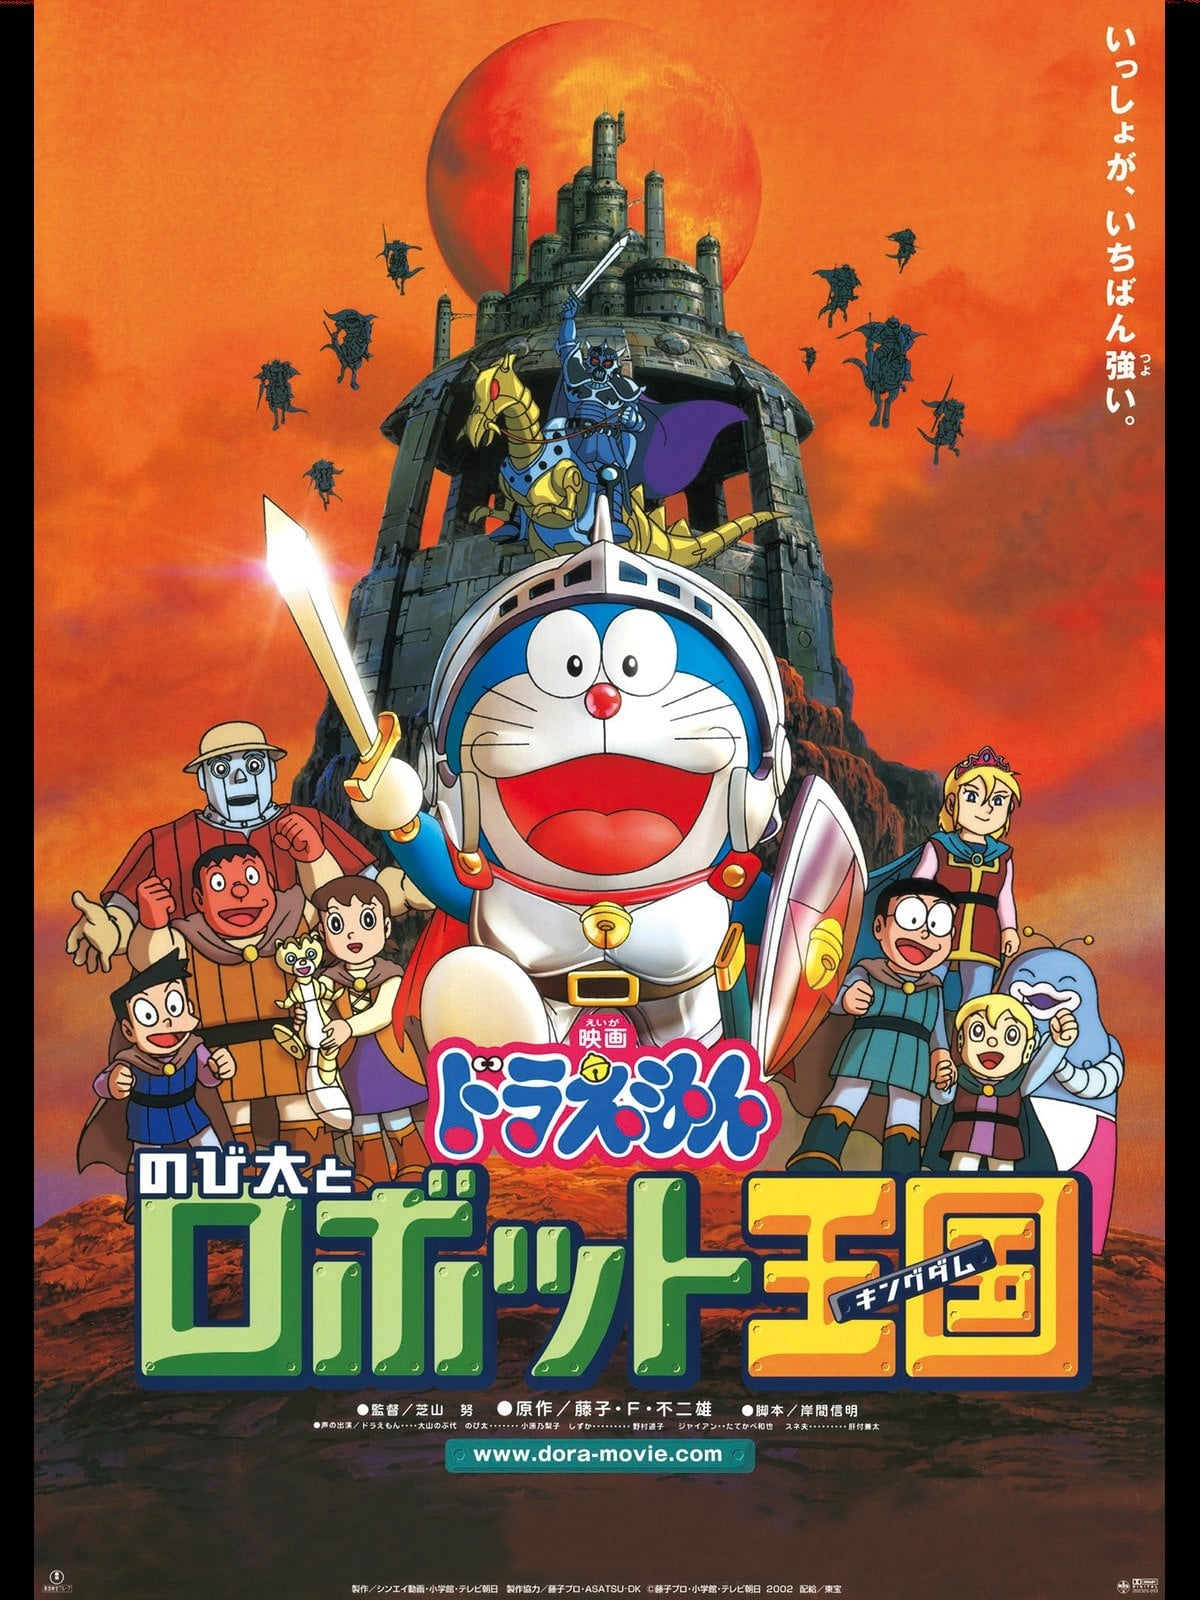 Doraemon: Nobita and the Robot Kingdom (2002) - Posters